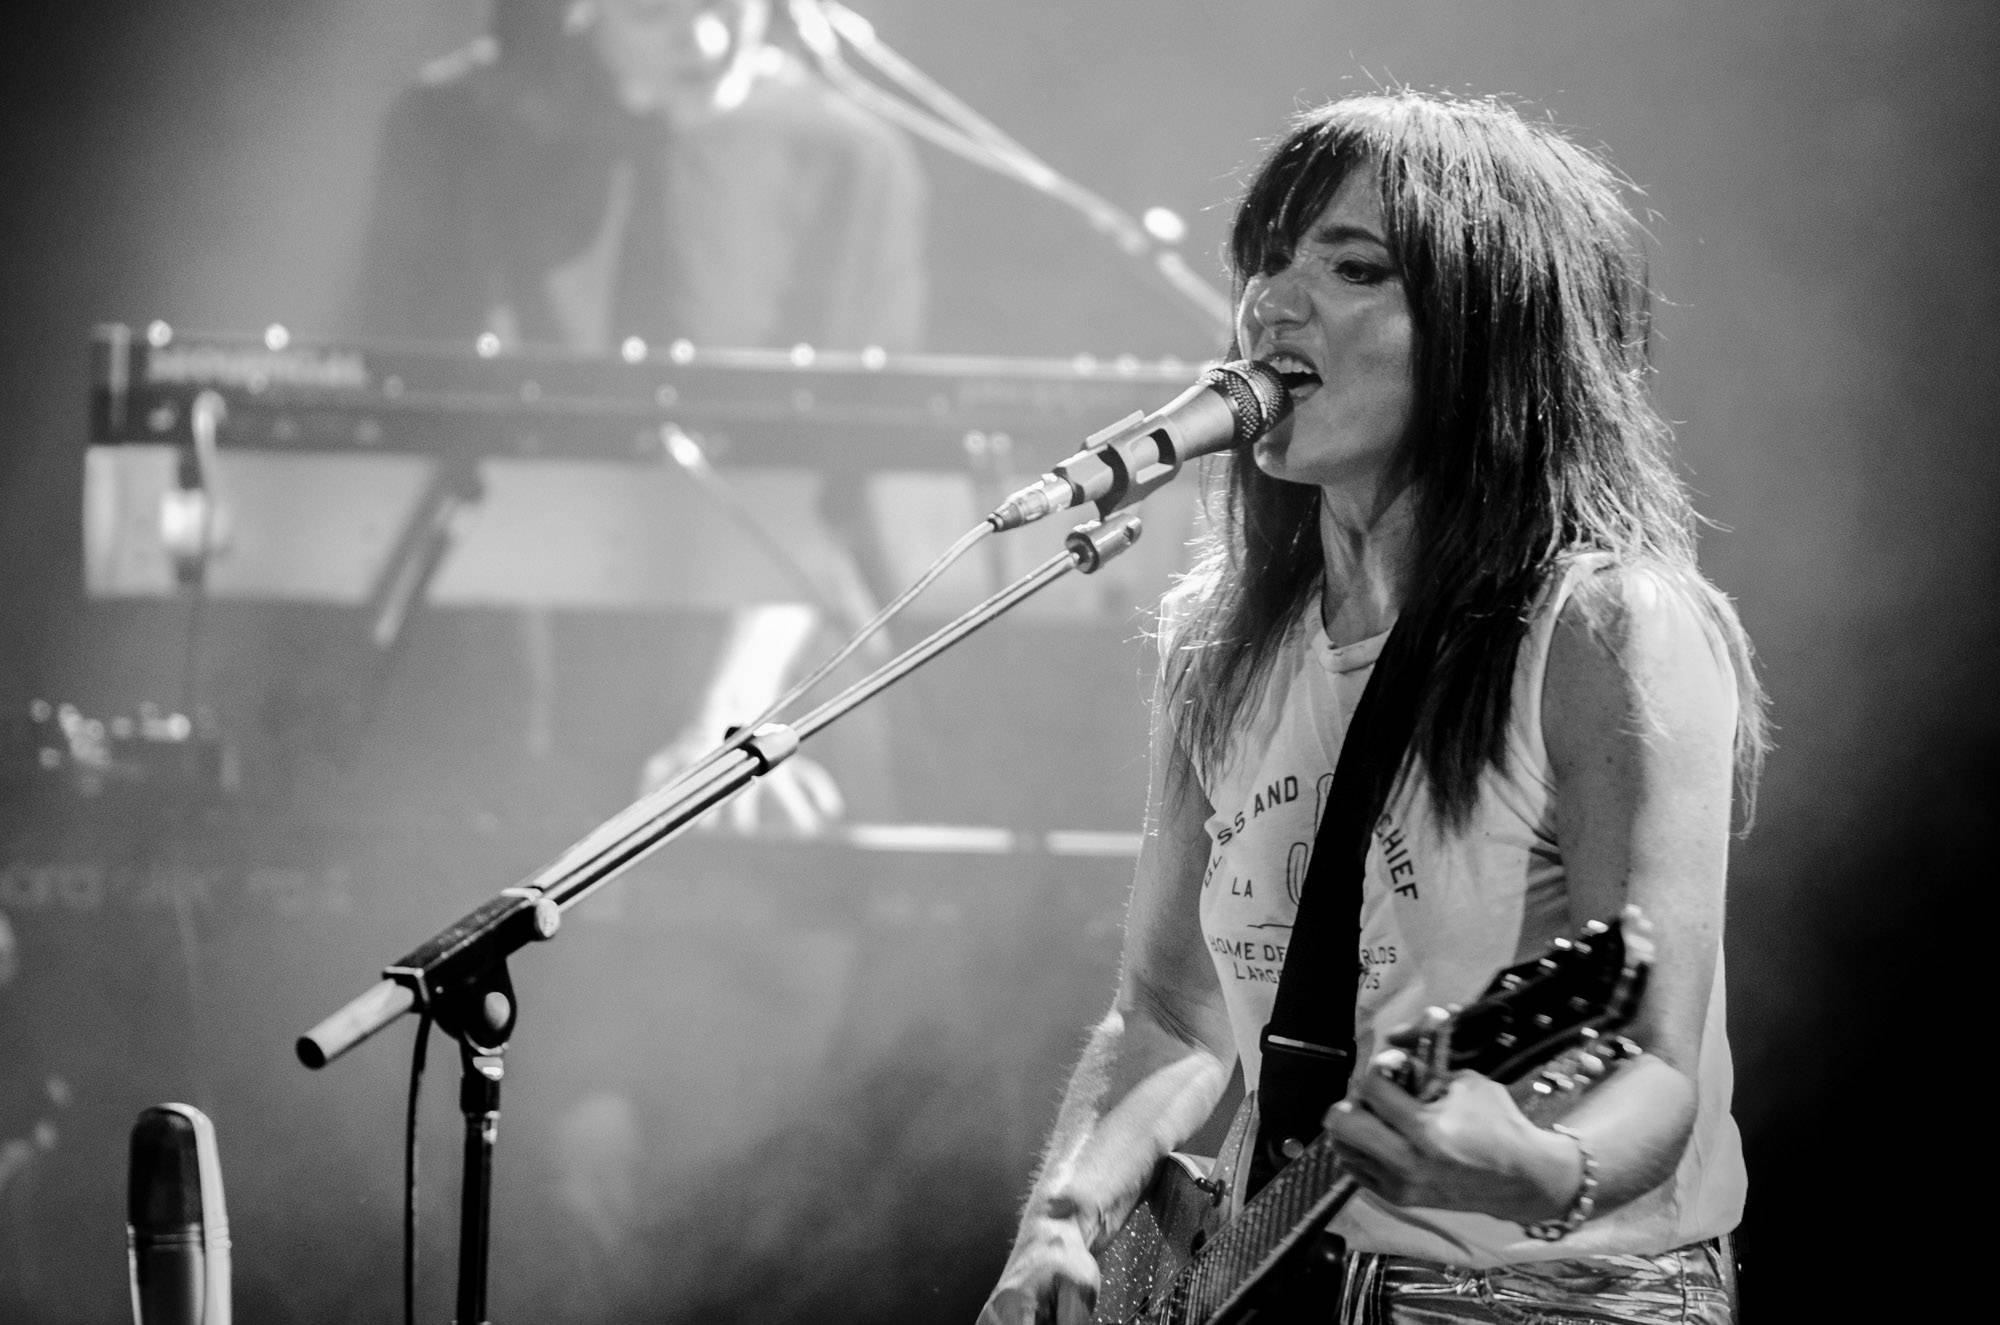 KT Tunstall at the Commodore Ballroom, Vancouver, Sept 29 2016. Jason Martin photo.